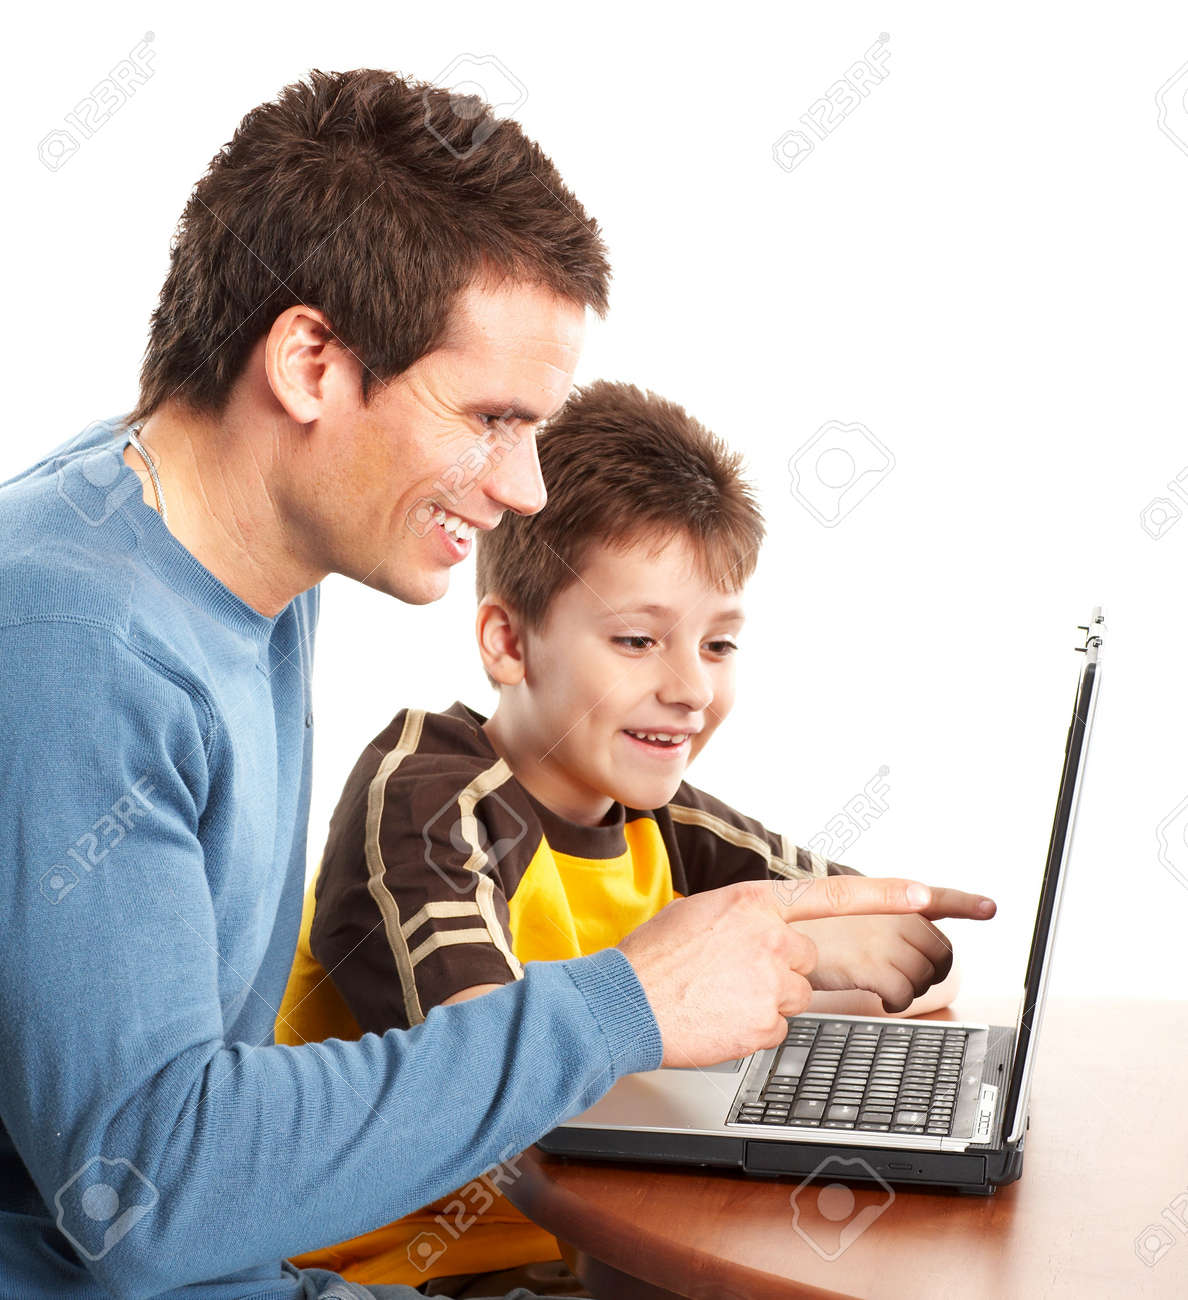 Happy family. Father and boy working with laptop. Over white background Stock Photo - 4752416